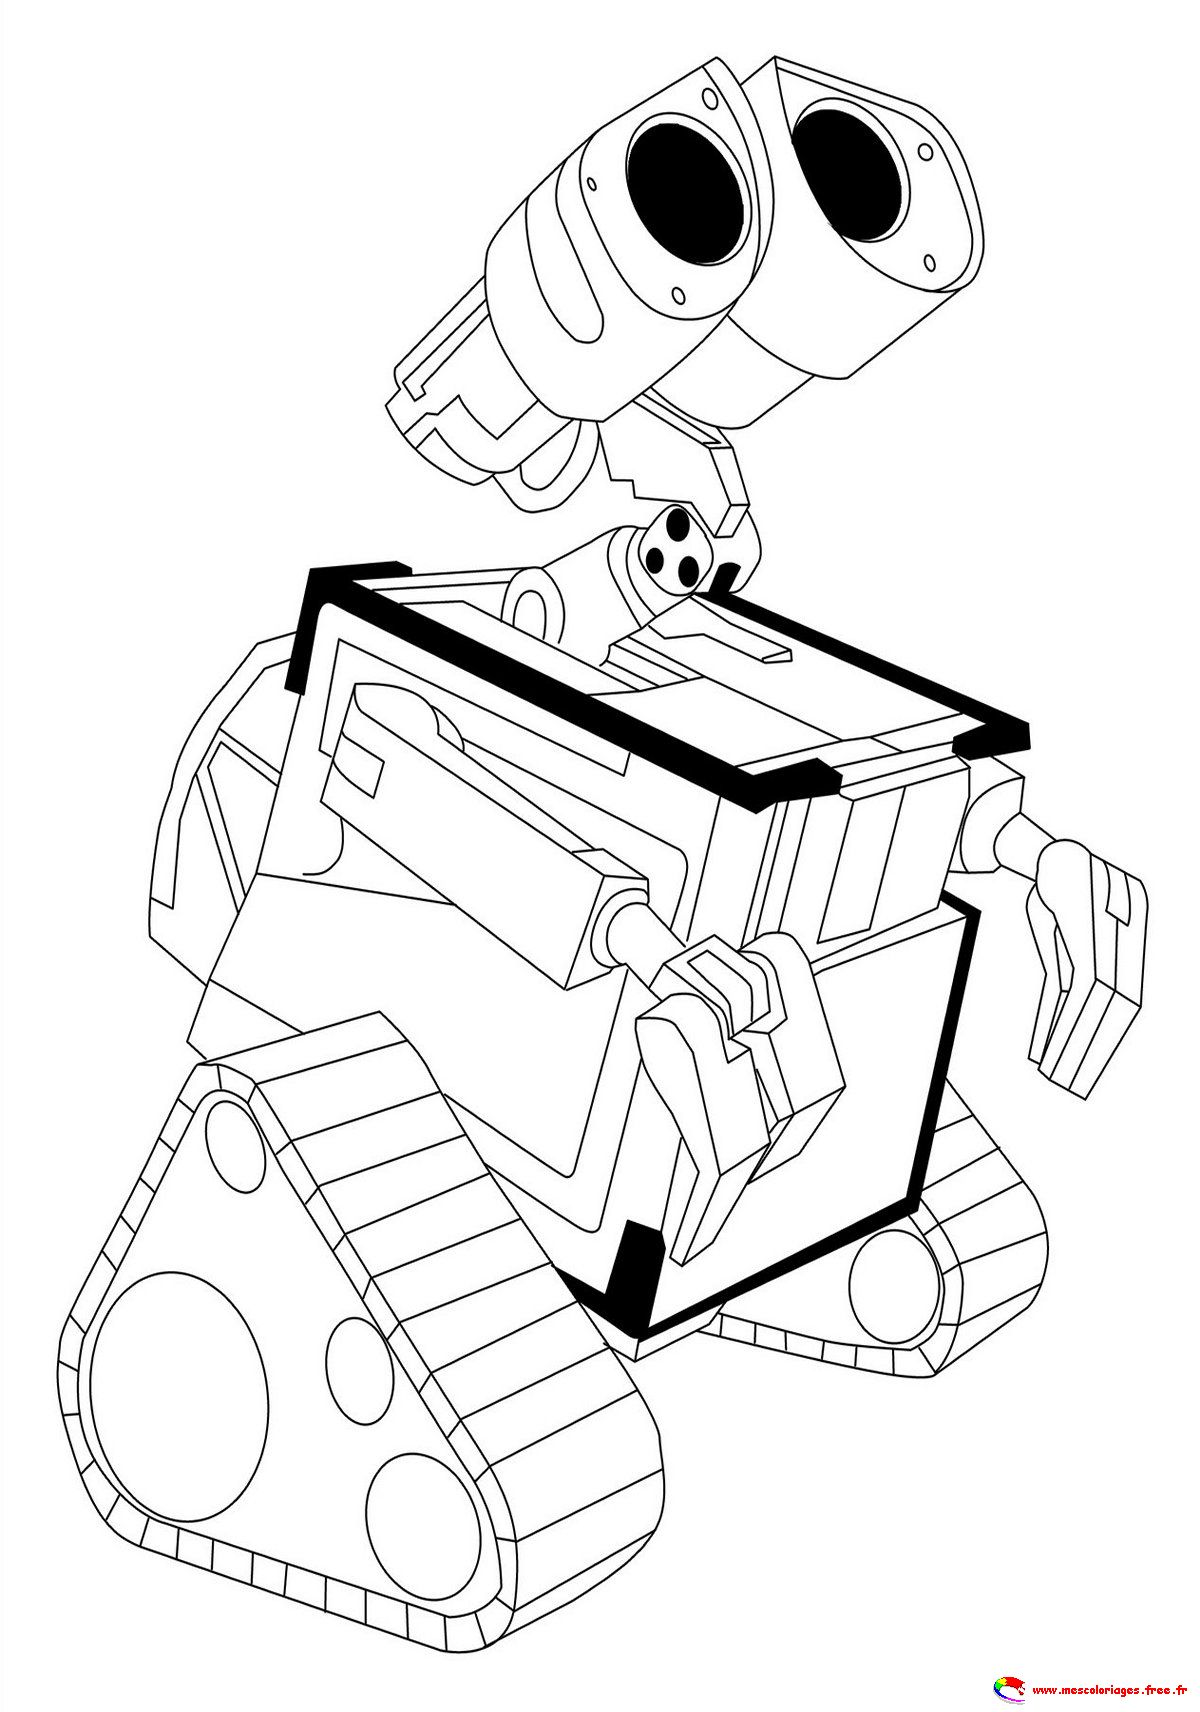 wall e pictures to print wall e coloring pages books 100 free and printable pictures to e wall print